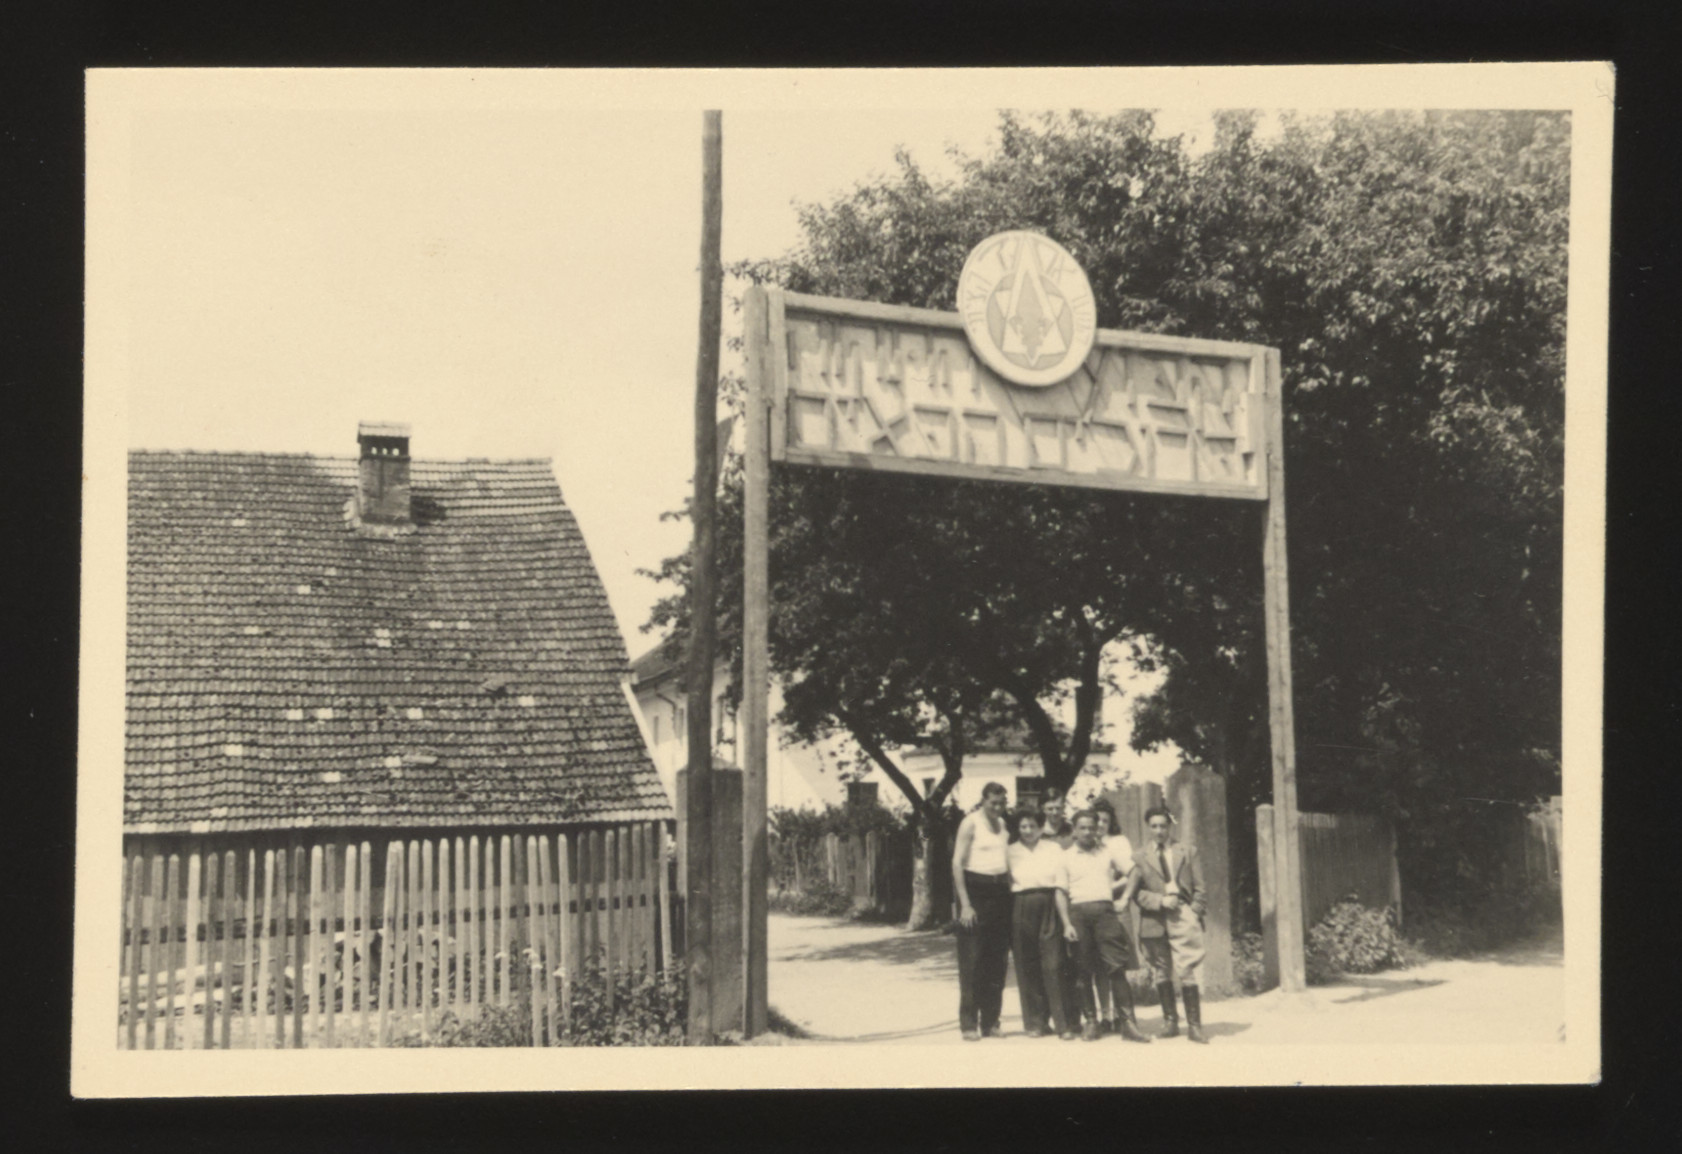 A group of young Jewish displaced persons poses underneath the welcome sign to an unidentified kibbutz hachshara.